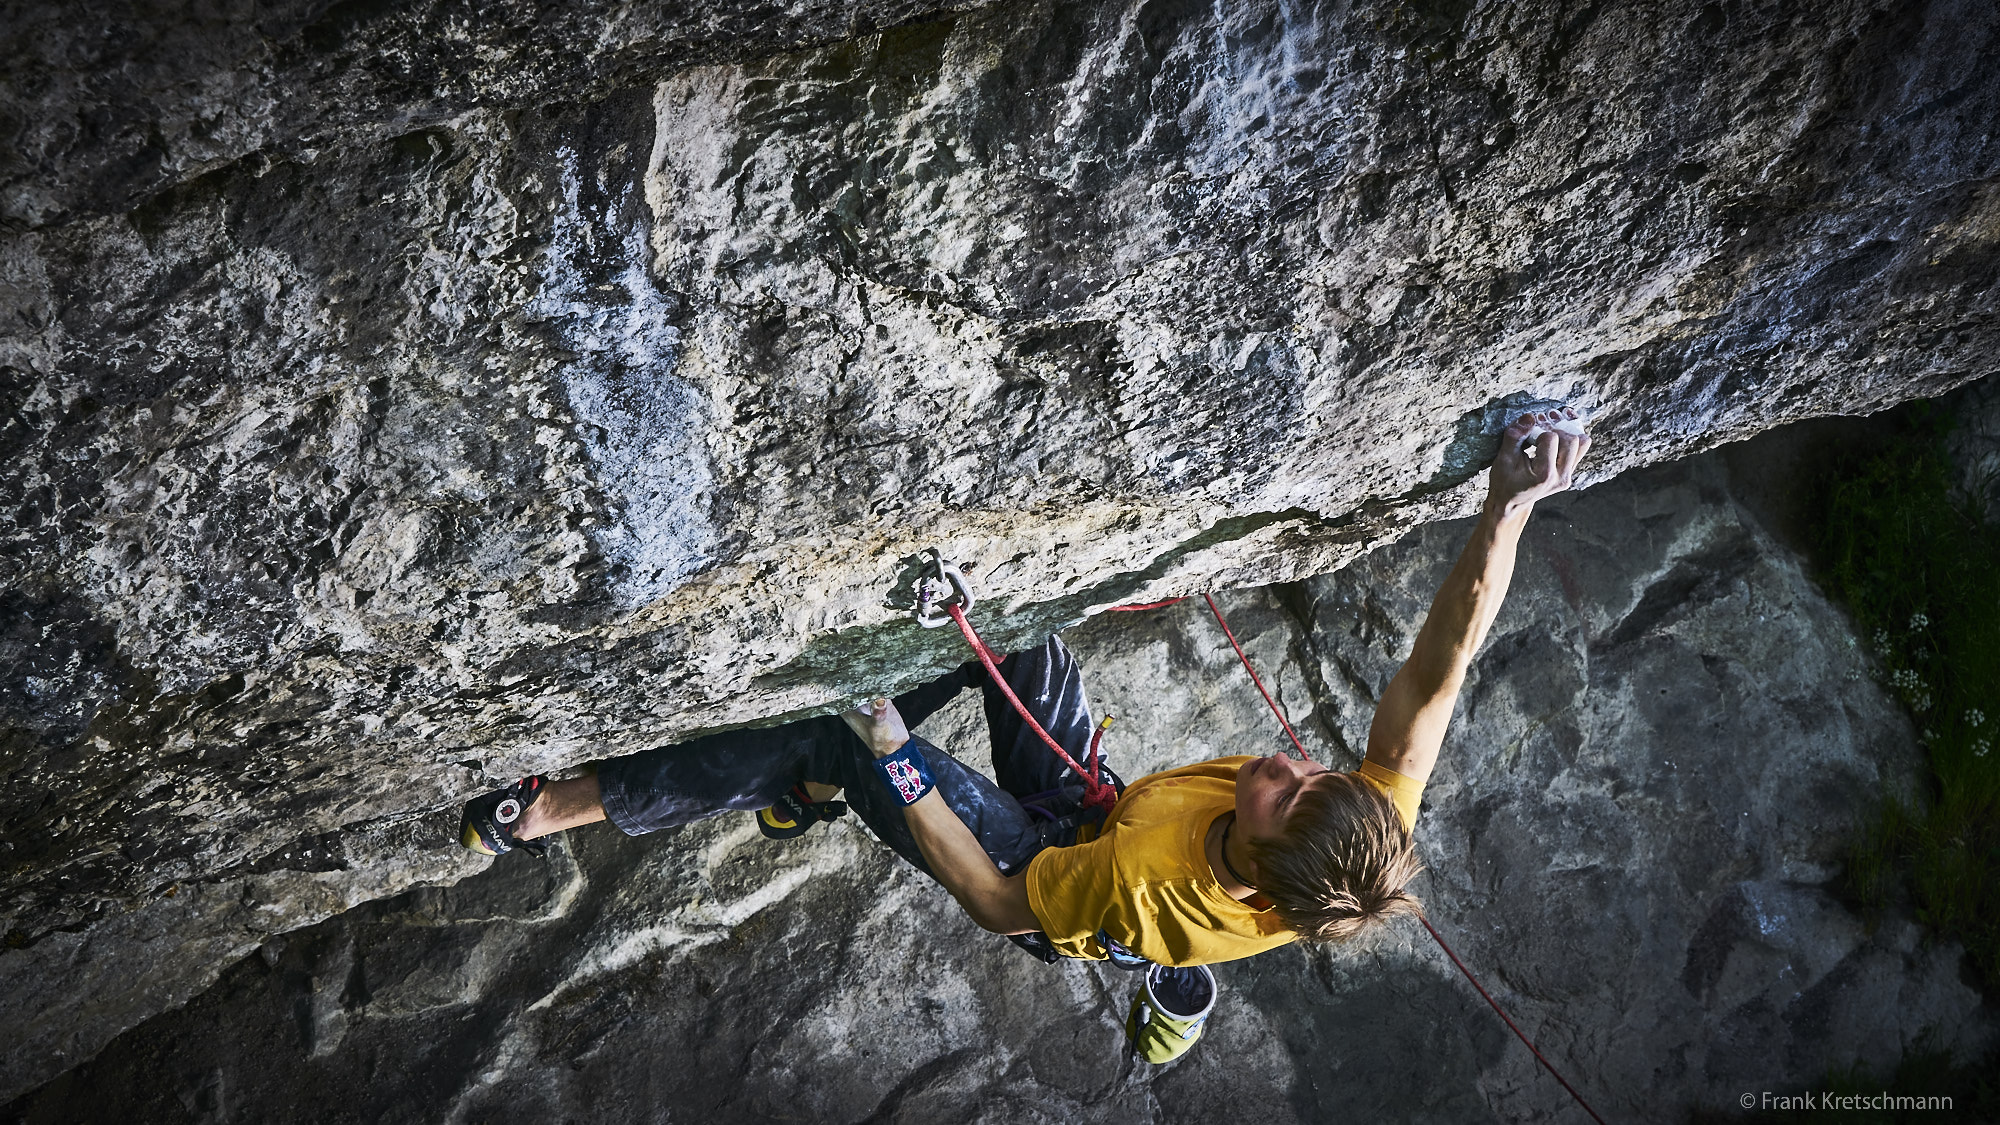 """Alex Megos on <em>Hubble</em> (8c+/5.14c) at Raven Tor. Photo courtesy of Frank Kretschmann."""" title=""""Alex Megos on <em>Hubble</em> (8c+/5.14c) at Raven Tor. Photo courtesy of Frank Kretschmann."""" style=""""float: right; margin: 0px 0px 10px 10px;""""><strong>Alex Megos, 22, </strong>has     redpointed Ben Moon's famous <em>Hubble </em>(8c+/5.14c) at Raven Tor in the Peak District, U.K. He is the first non-British climber to have repeated     the route.</p> <p>Moon established <em>Hubble </em>on June 4, 1990 as the world's first 8c+ (5.14c)—far ahead of its time—and some climbers consider it to be     even harder.</p> <p>""""8c+, 9a+ or 8b+. Who cares?! It's the name that counts! And the name is HUBBLE!"""" Megos posted on Instagram after his ascent. """"It's a piece of history!     Thanks Ben Moon for putting up that thing and for having a vision! A vision for what is possible, the next step!""""</p> <p>The line is only eight meters in length but it packs a punch. The steep, Derbyshire limestone has shut down some of the world's top climbers, including     Adam Ondra, Dave Graham and Sean McColl, according to <a href="""